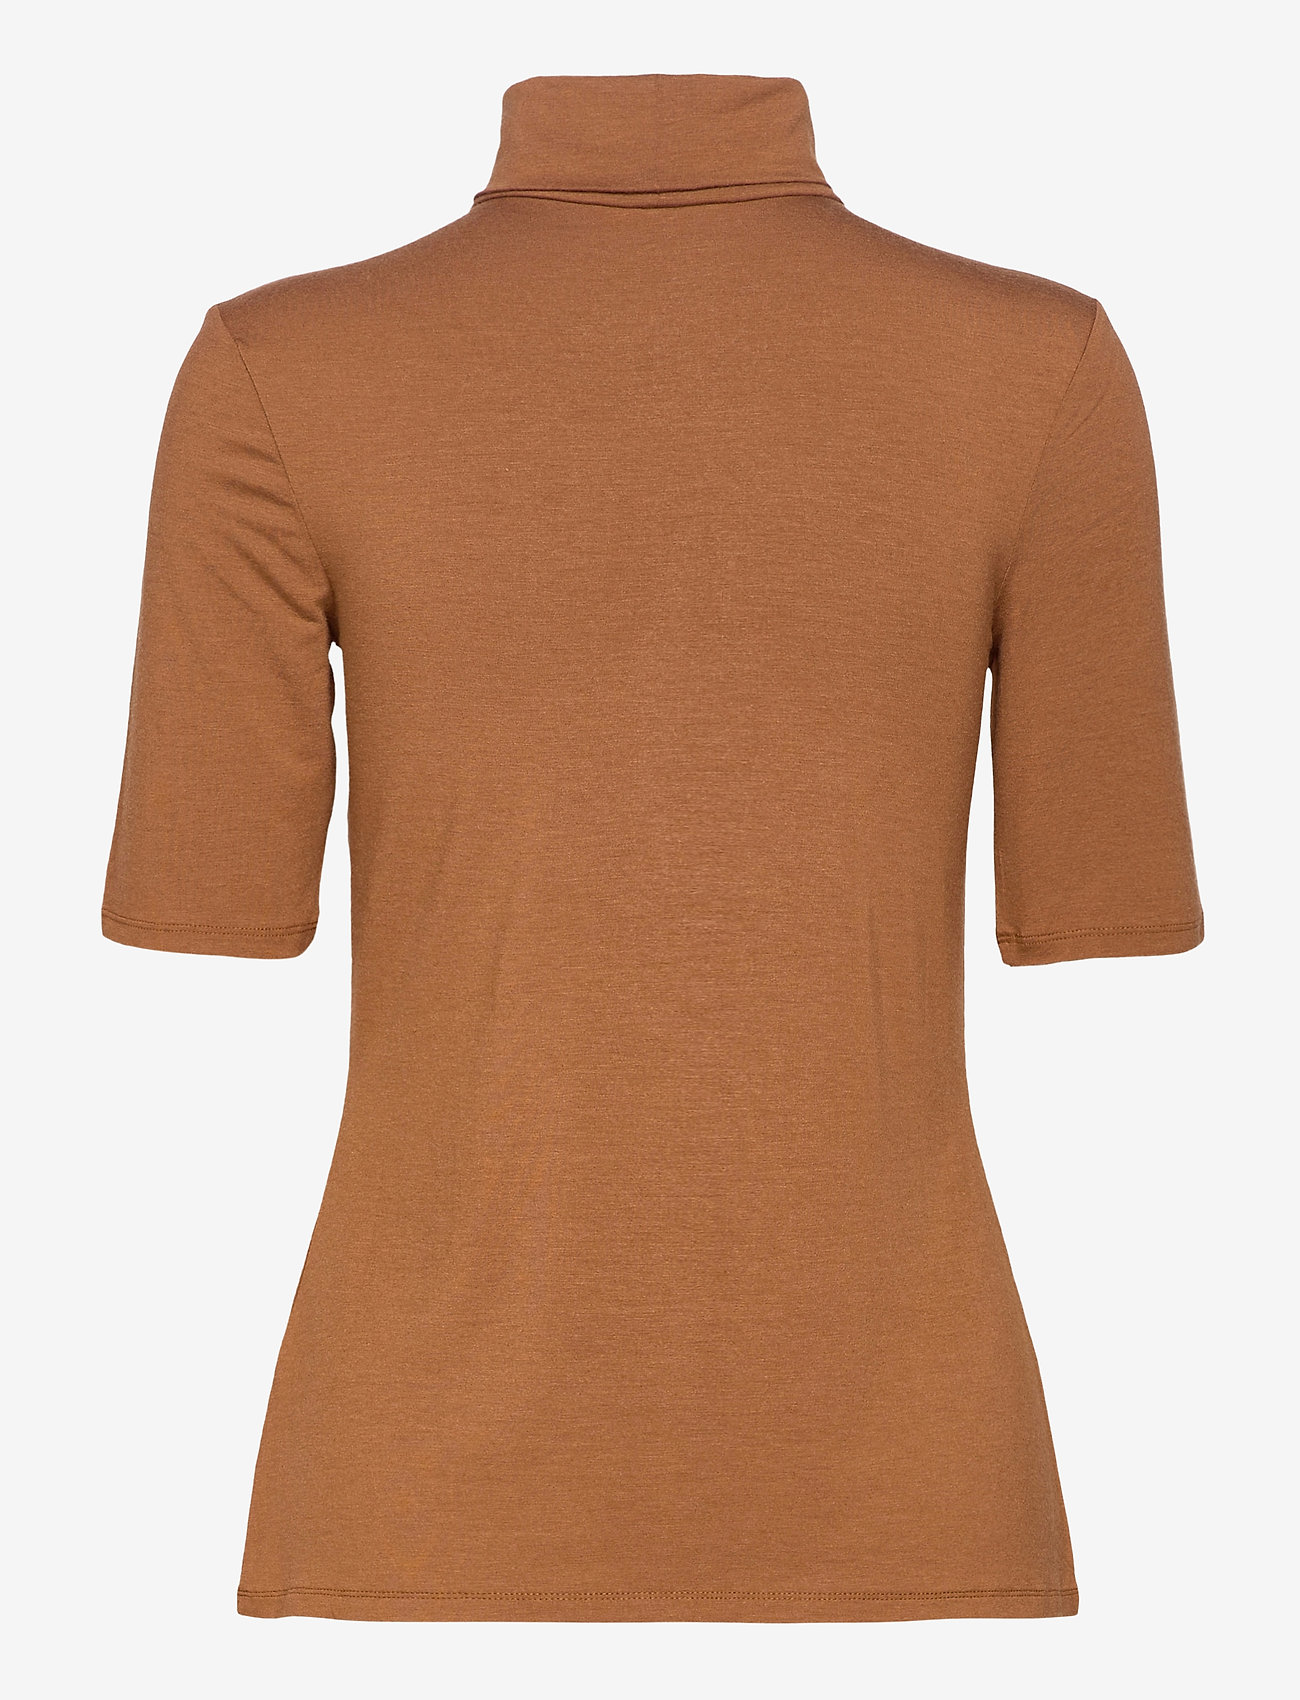 Esprit Collection - T-Shirts - t-shirt & tops - toffee - 1